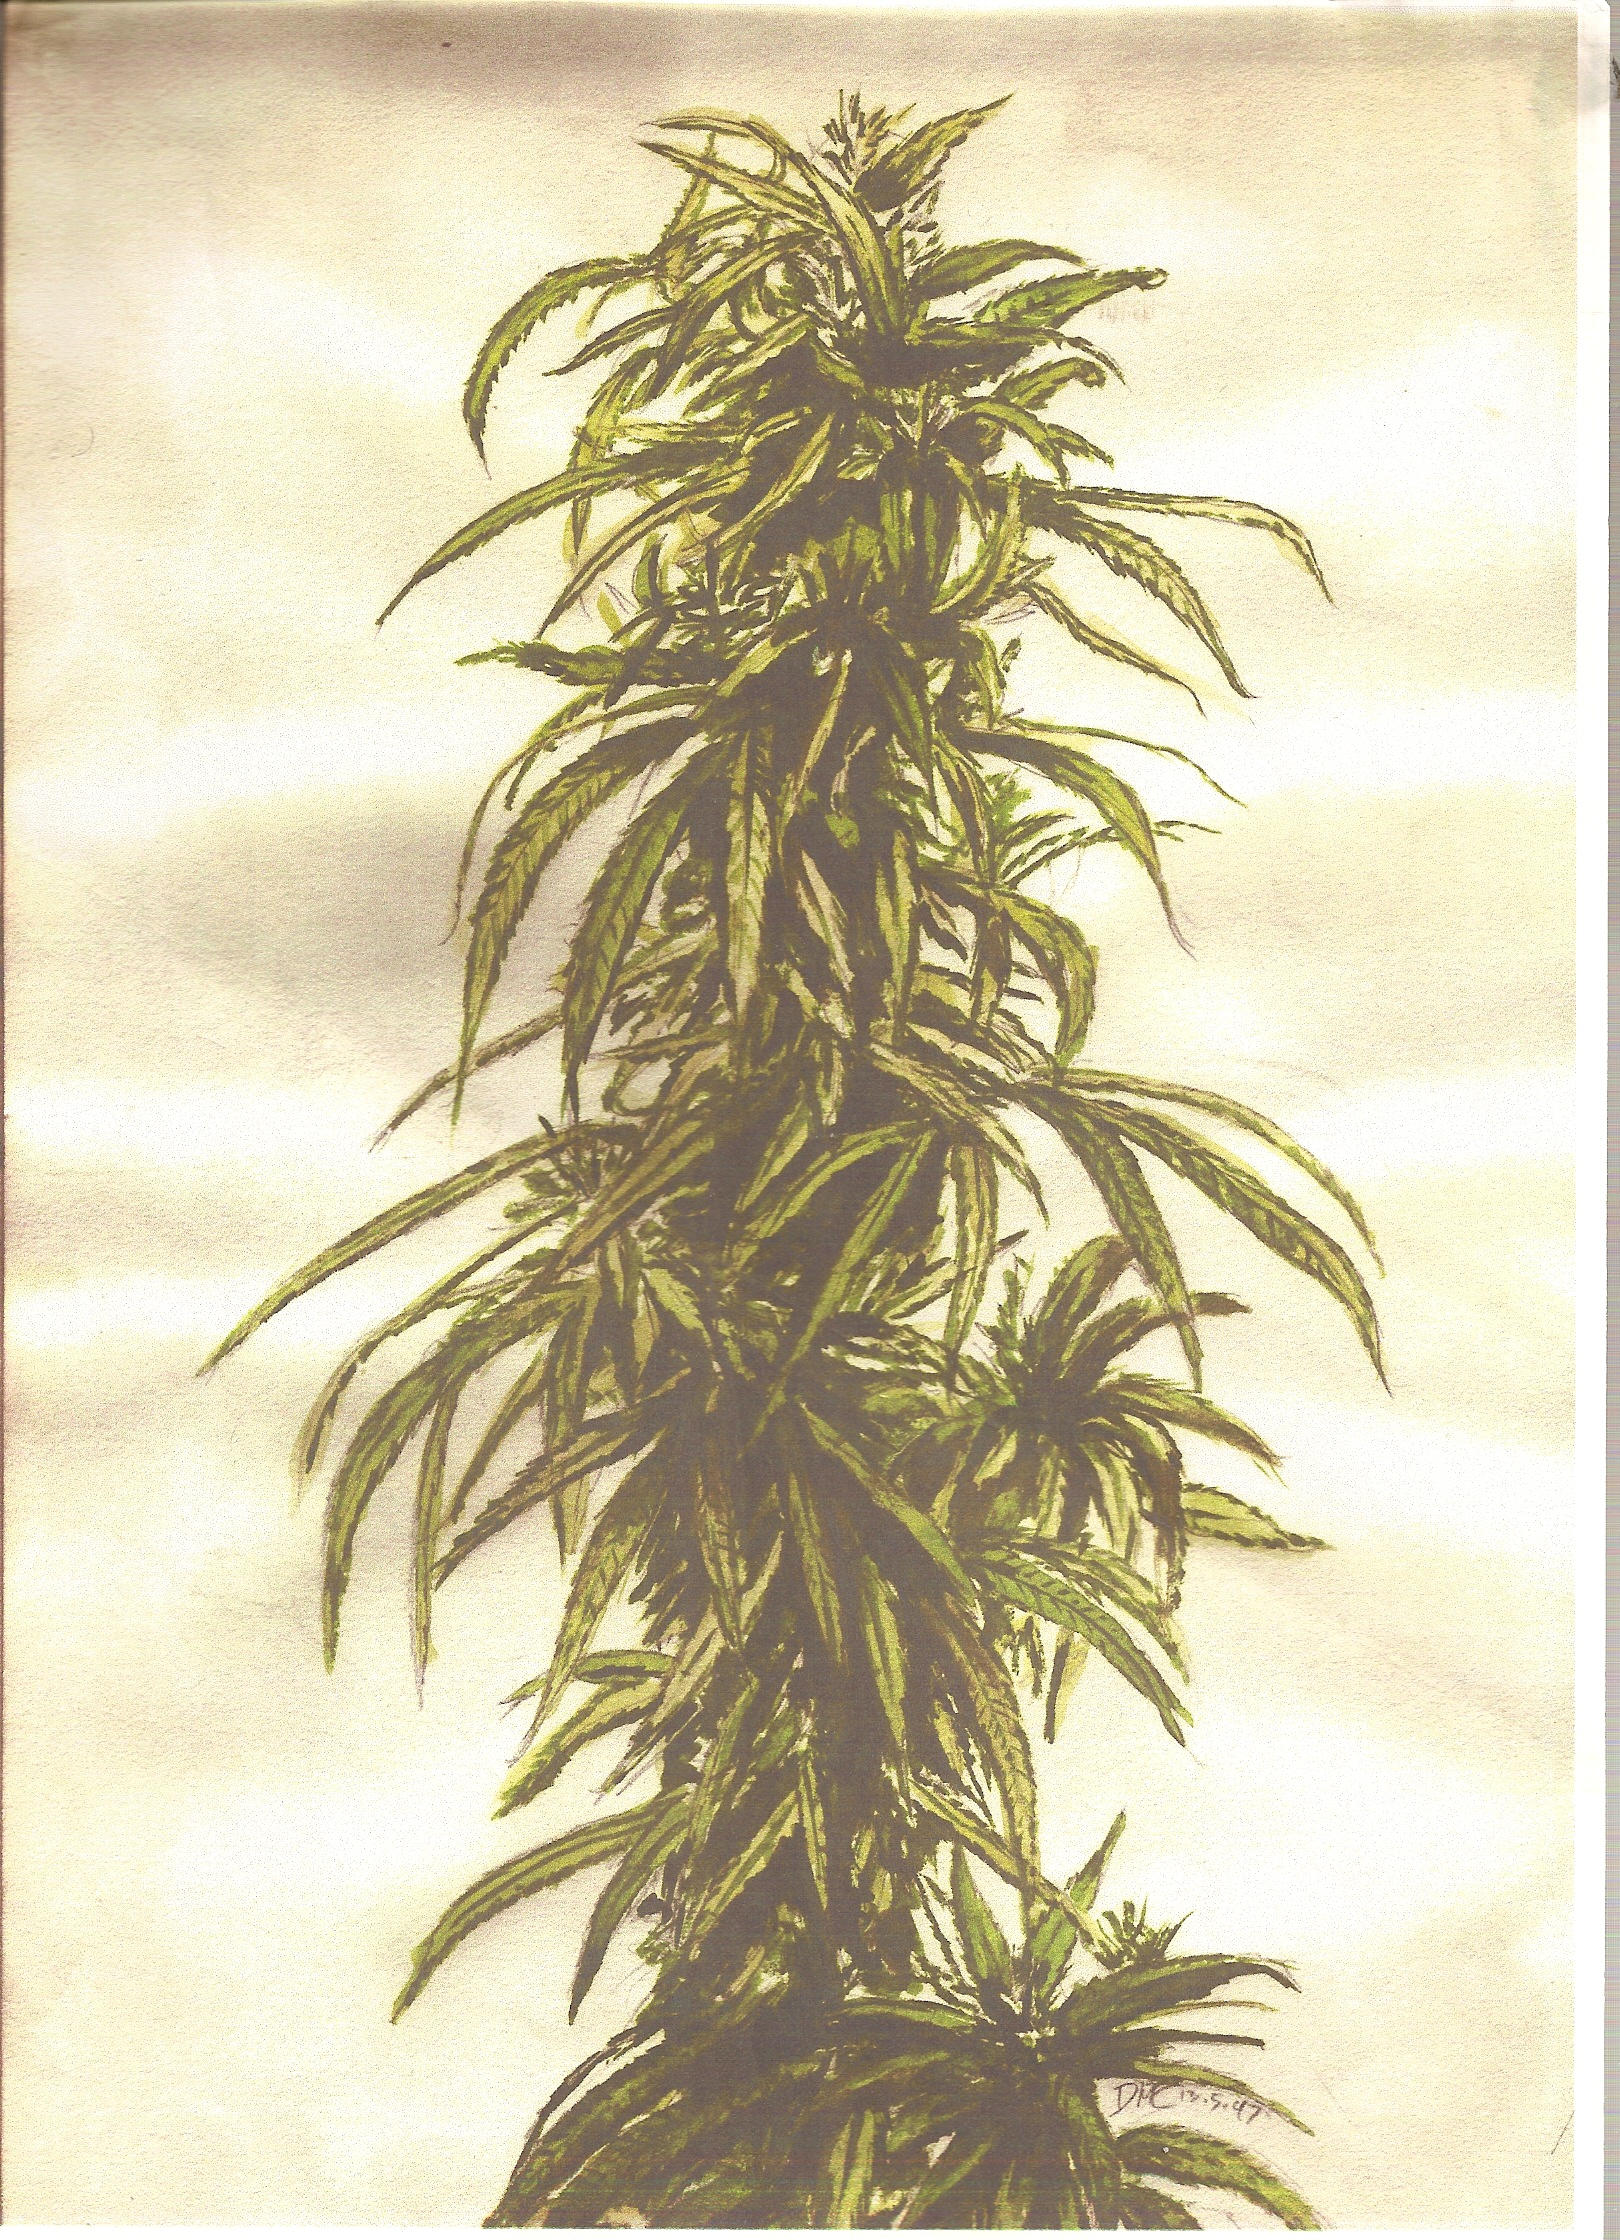 Weed Plant Drawing - Cliparts.co |Weed Plant Drawings